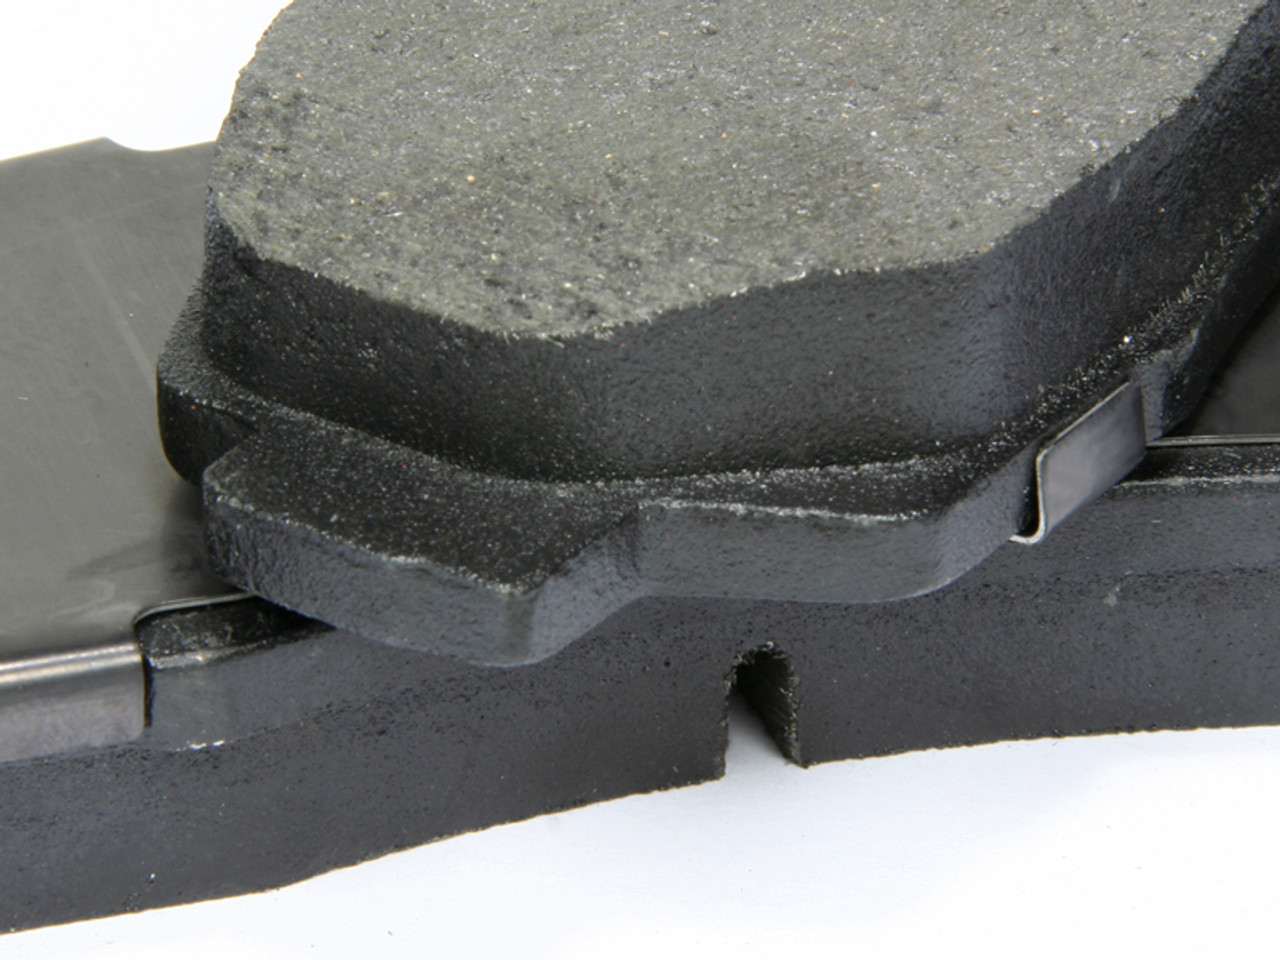 Correct fit of the brake pad in the caliper also works to prevent vibration and noise. Premium Brake Pads have precision cut or shaved backing plates ensuring proper fit in the caliper body.